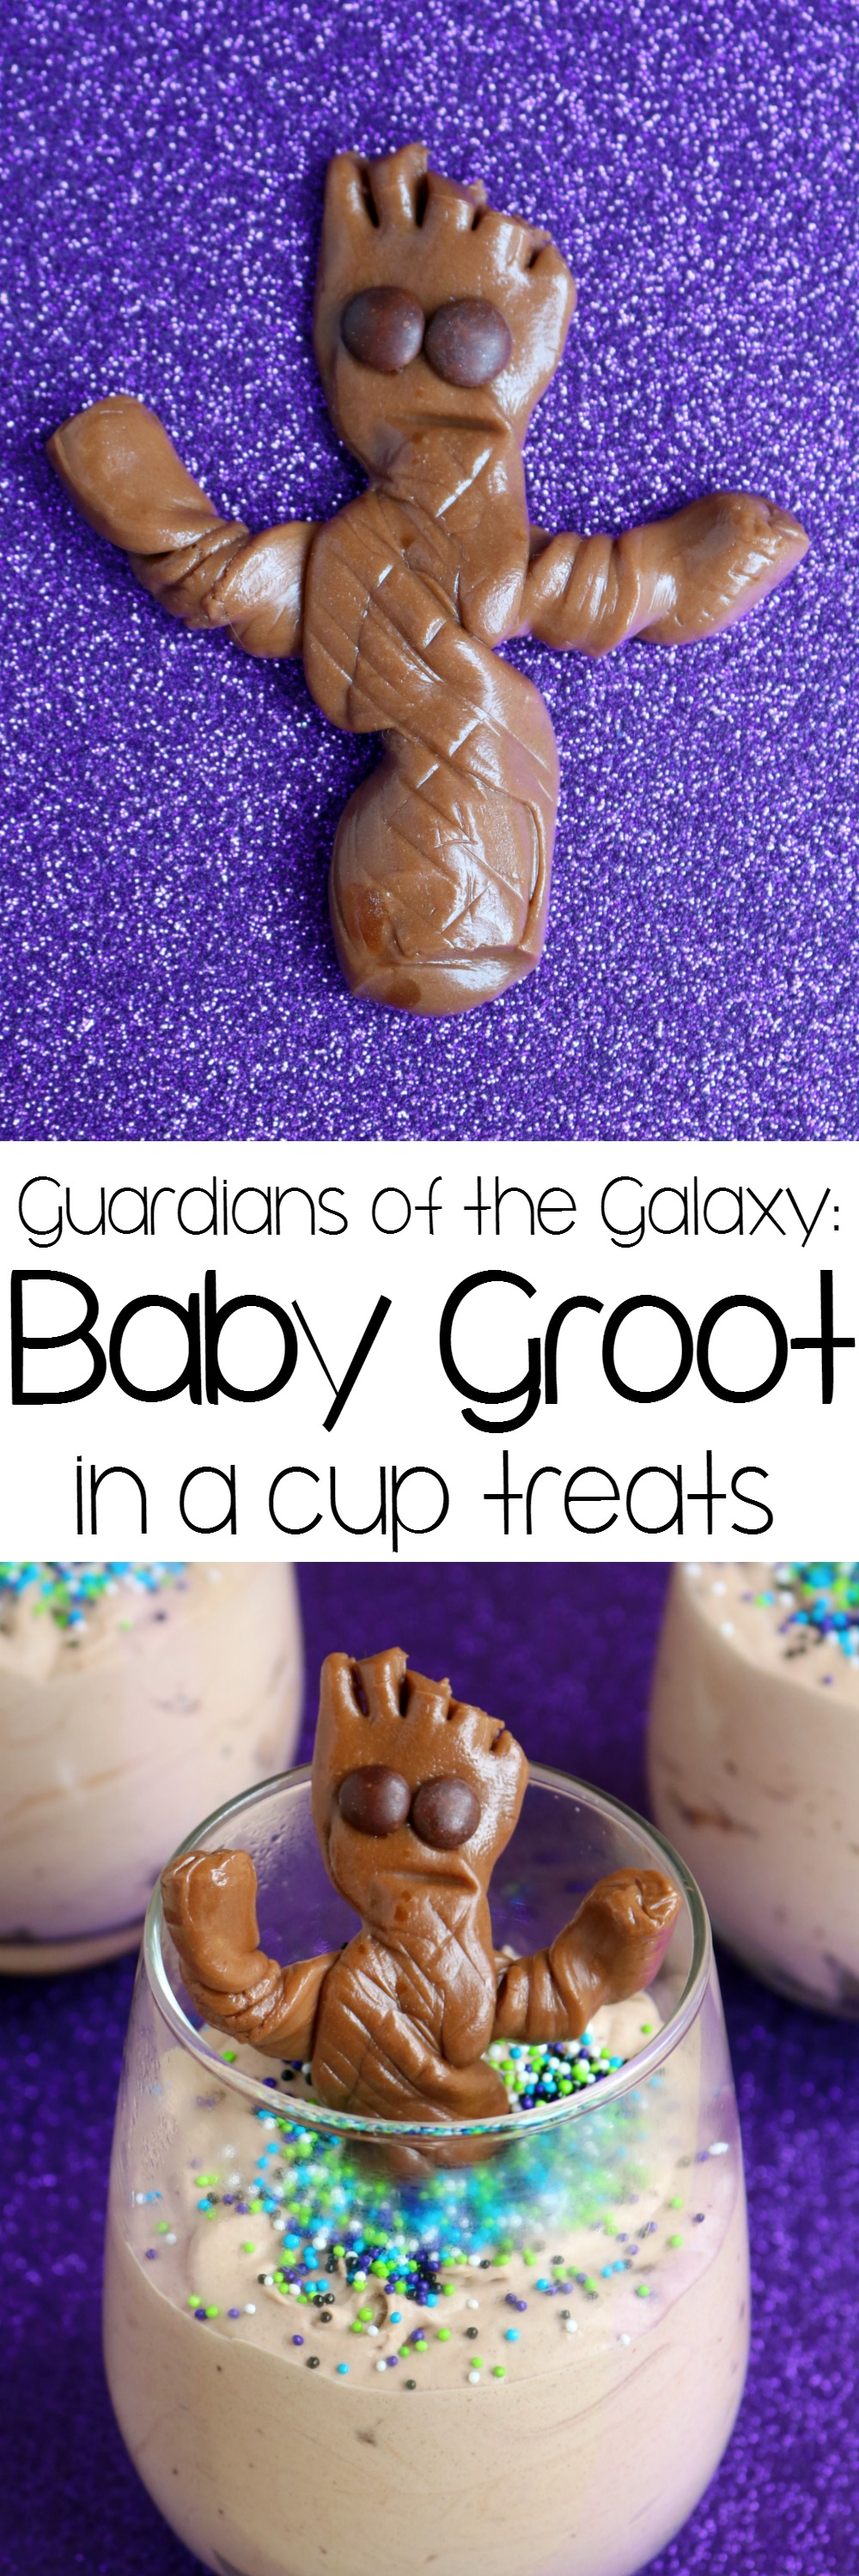 Guardians of the Galaxy Baby Groot Treats | SensiblySara.com